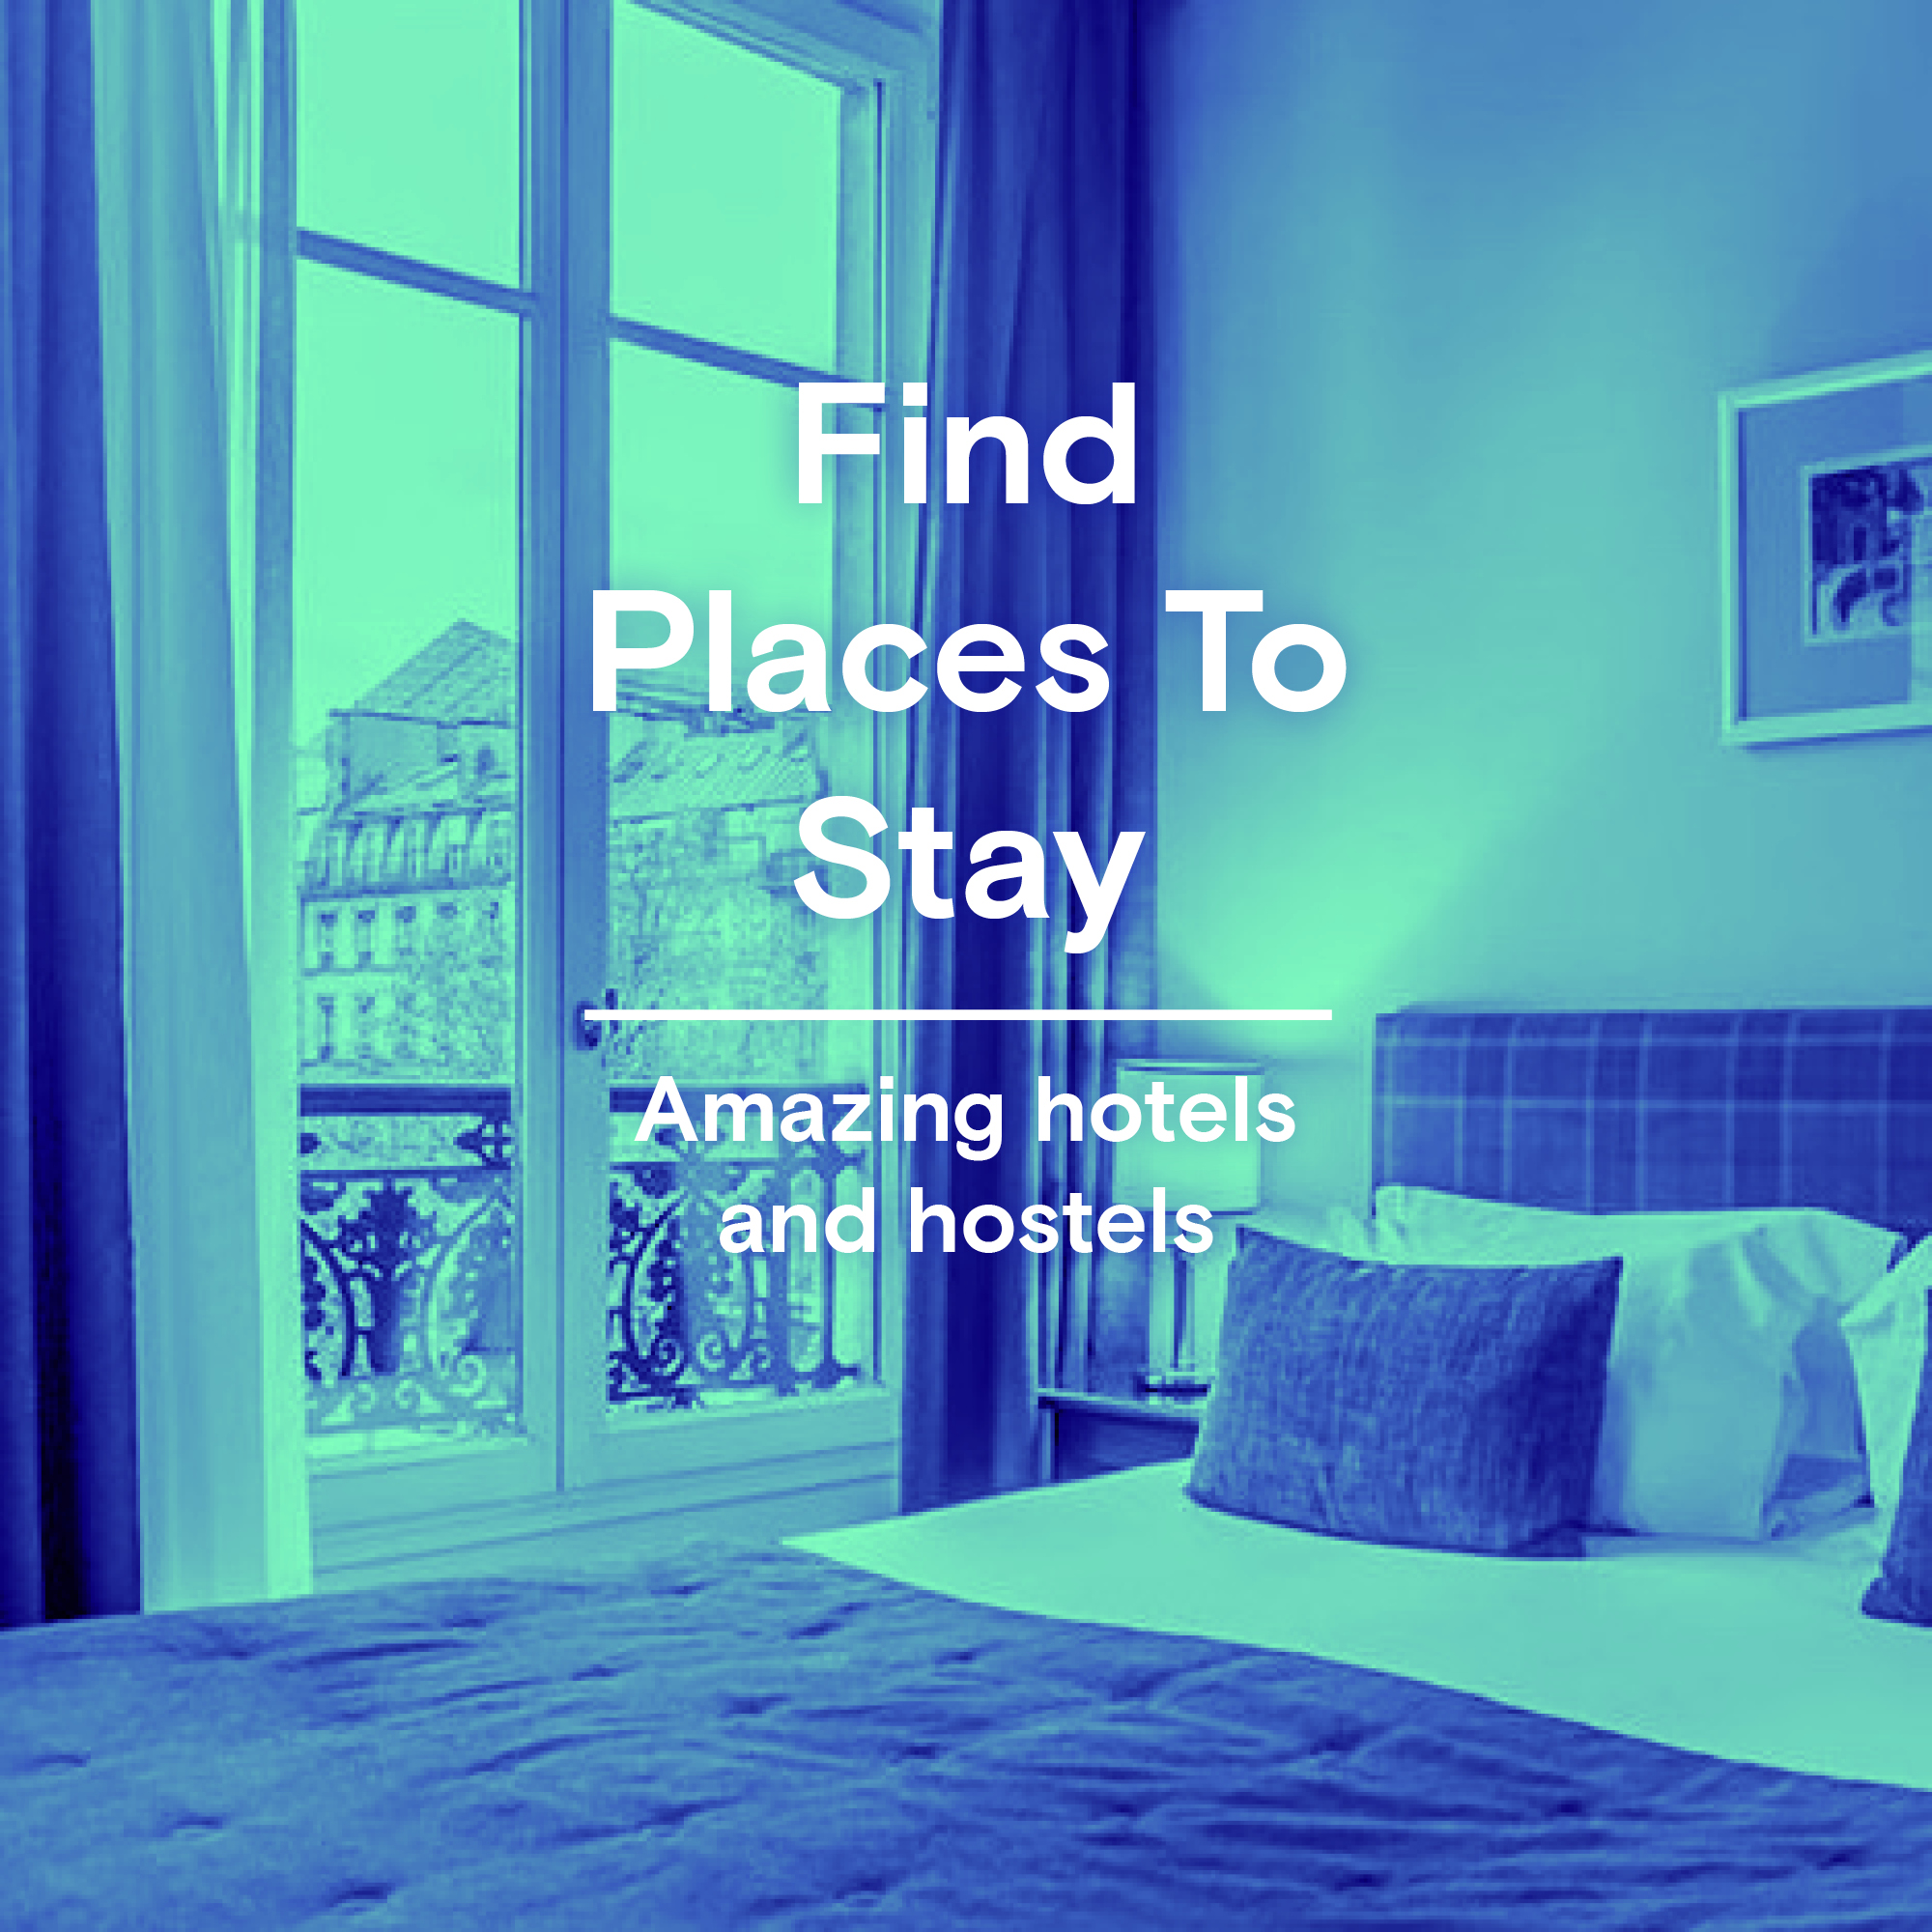 Best places to stay - trvl